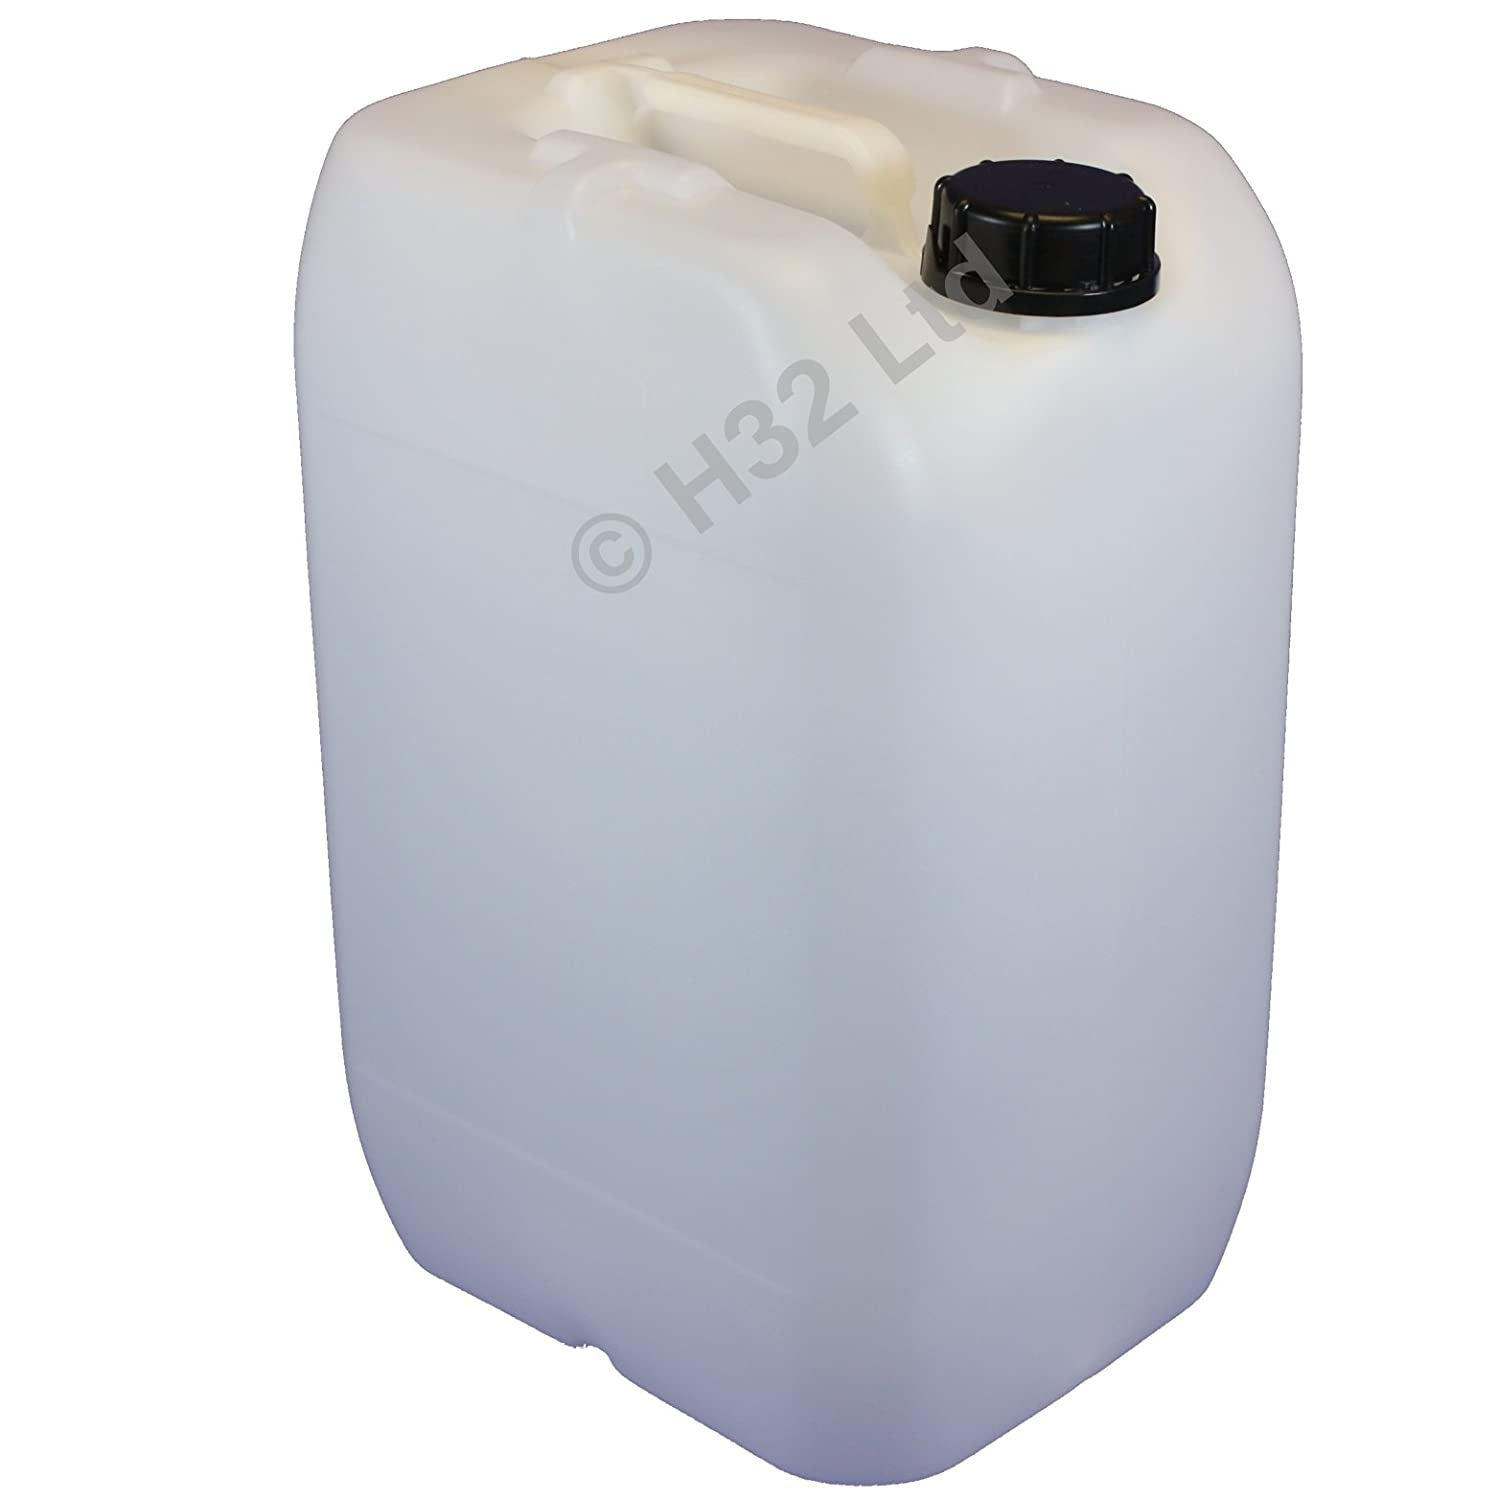 25 Litre PLASTIC WATER CONTAINER - DRUM - JERRICAN - 25L Containers -  Anti-glug system